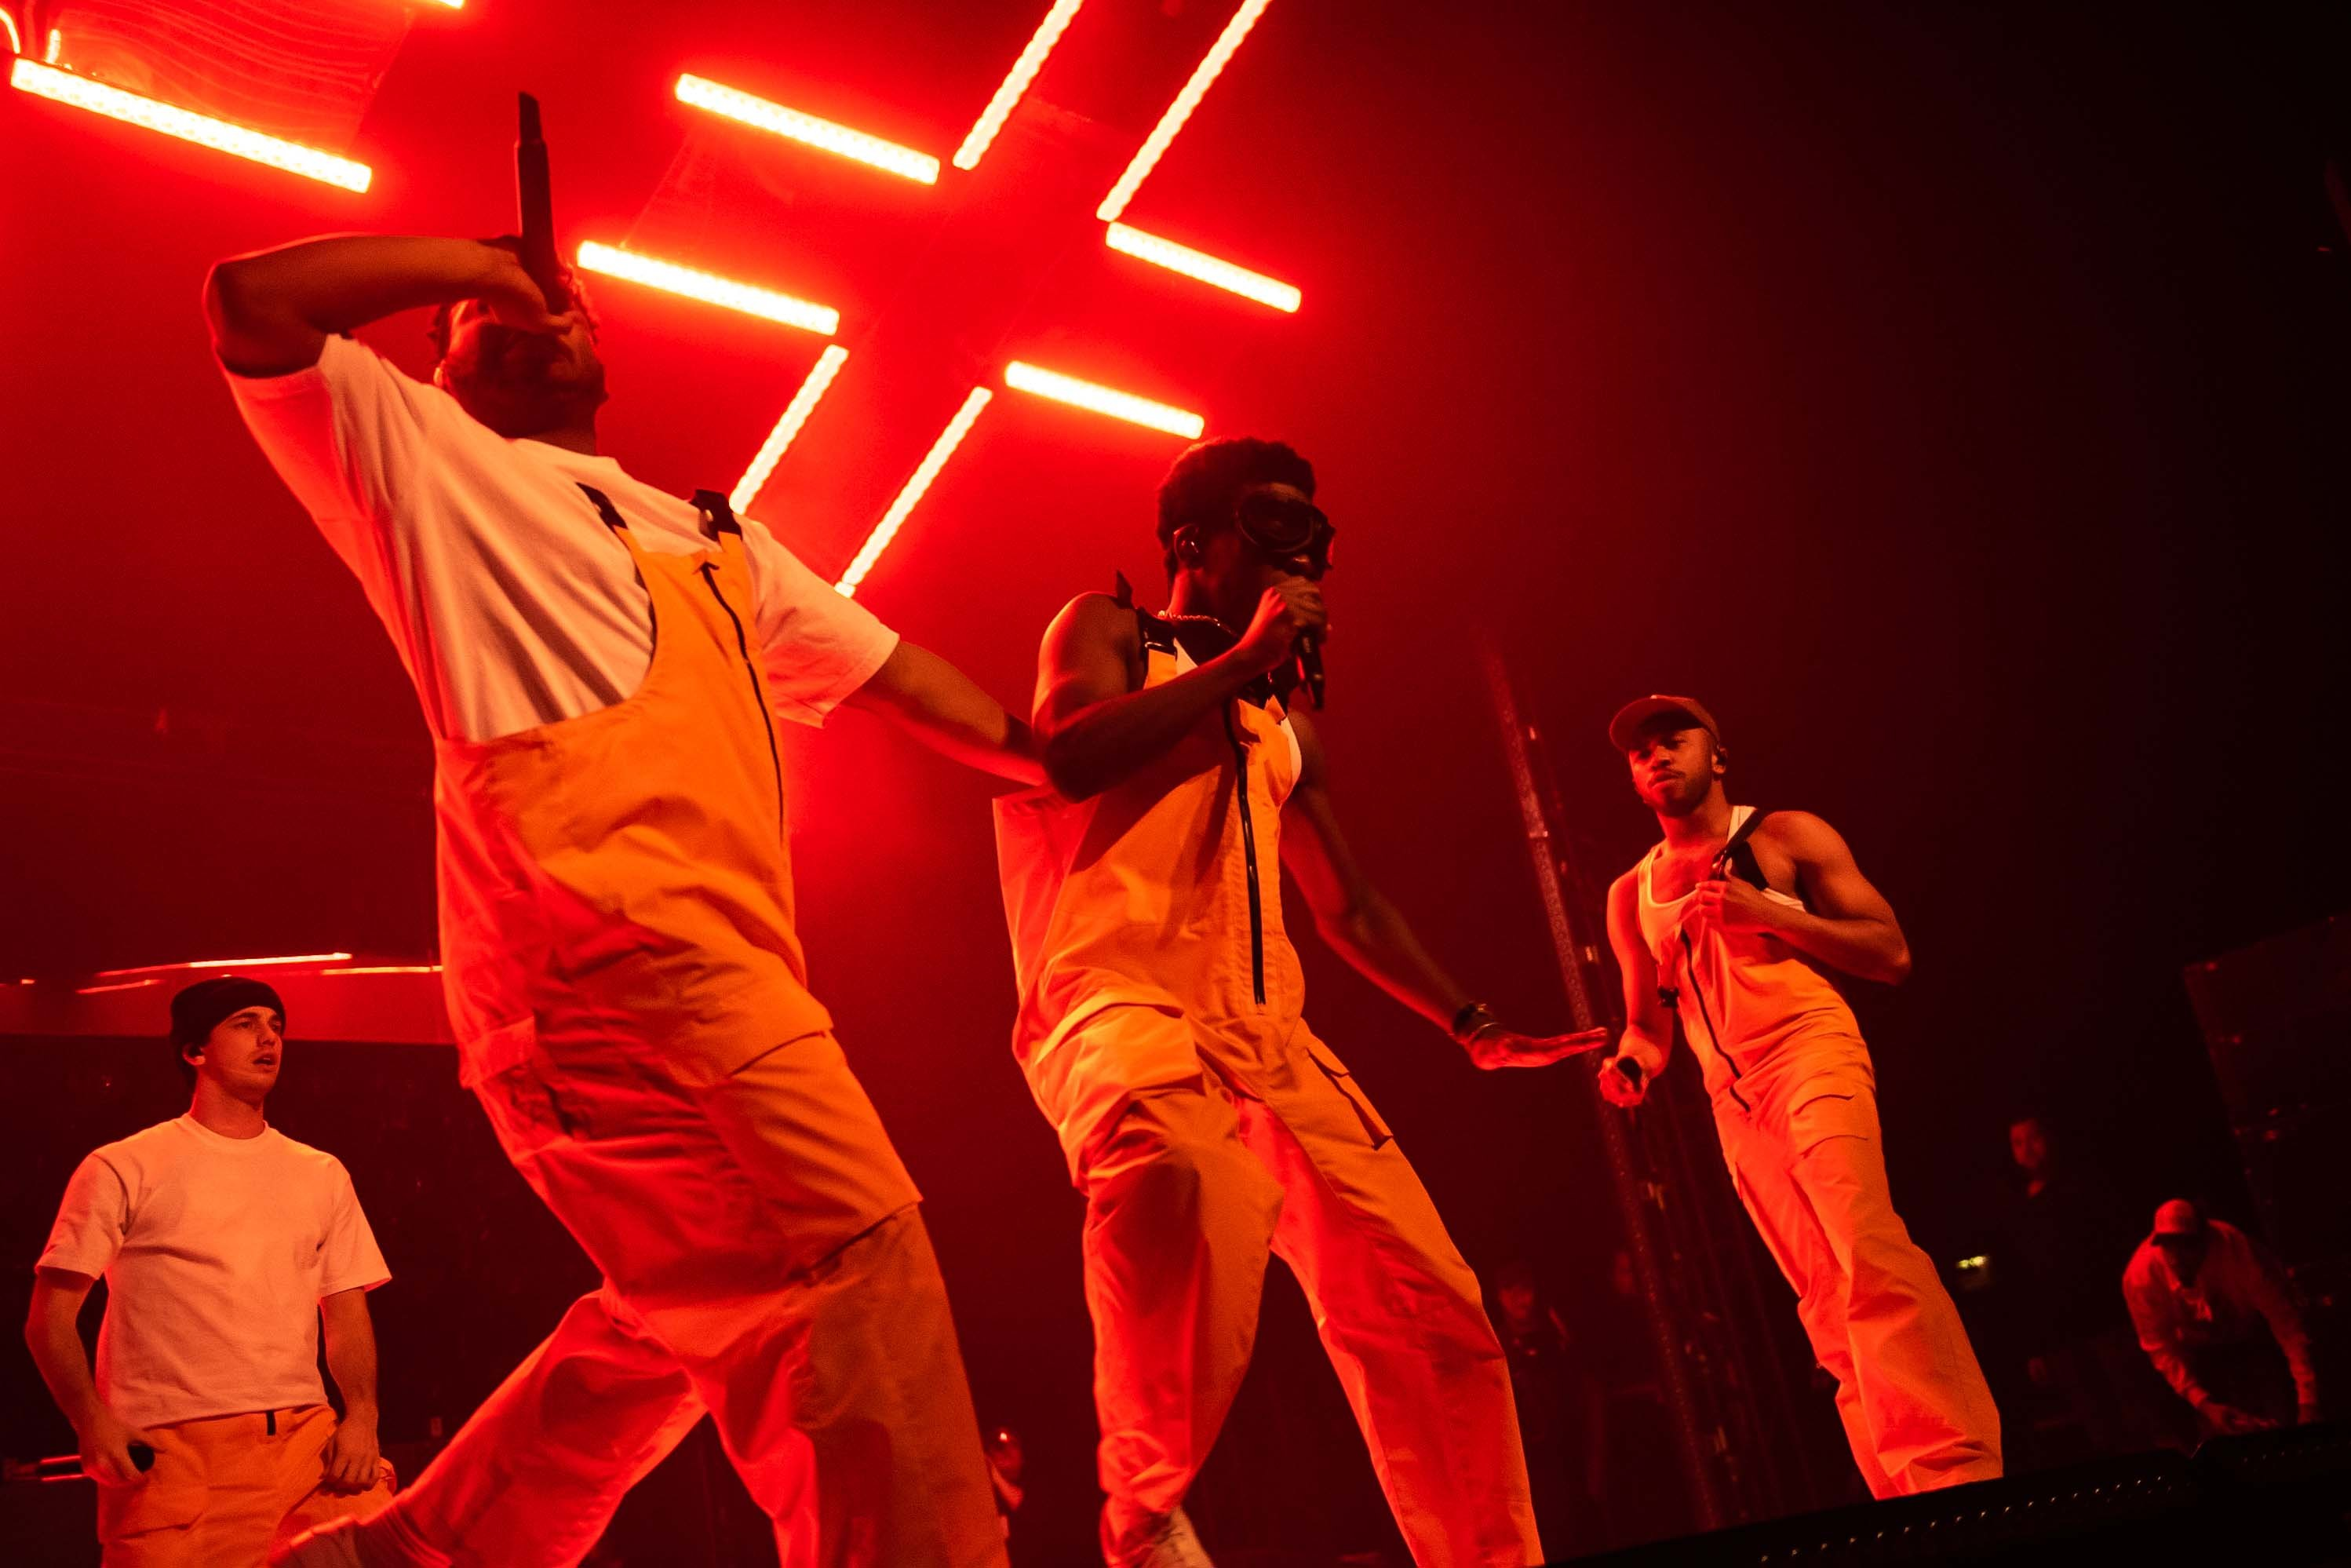 Brockhampton share two new songs 'M.O.B' and 'twisted'